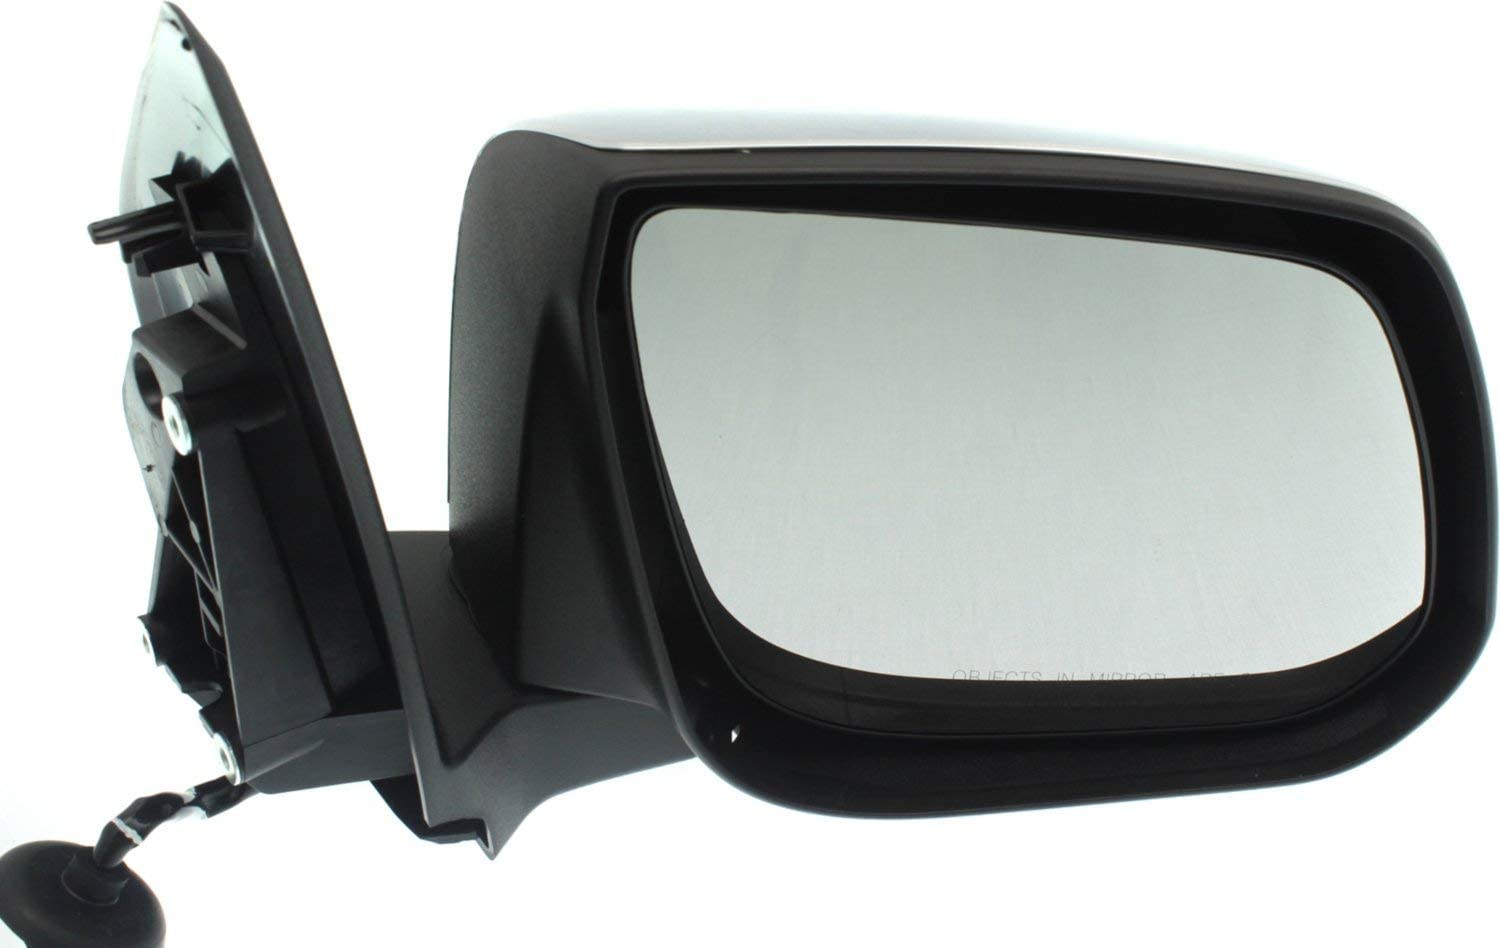 Kool Free shipping anywhere in the nation Vue GM109CR Year-end annual account Mirror for GMC 15-16 Side Canyon Colorado Right